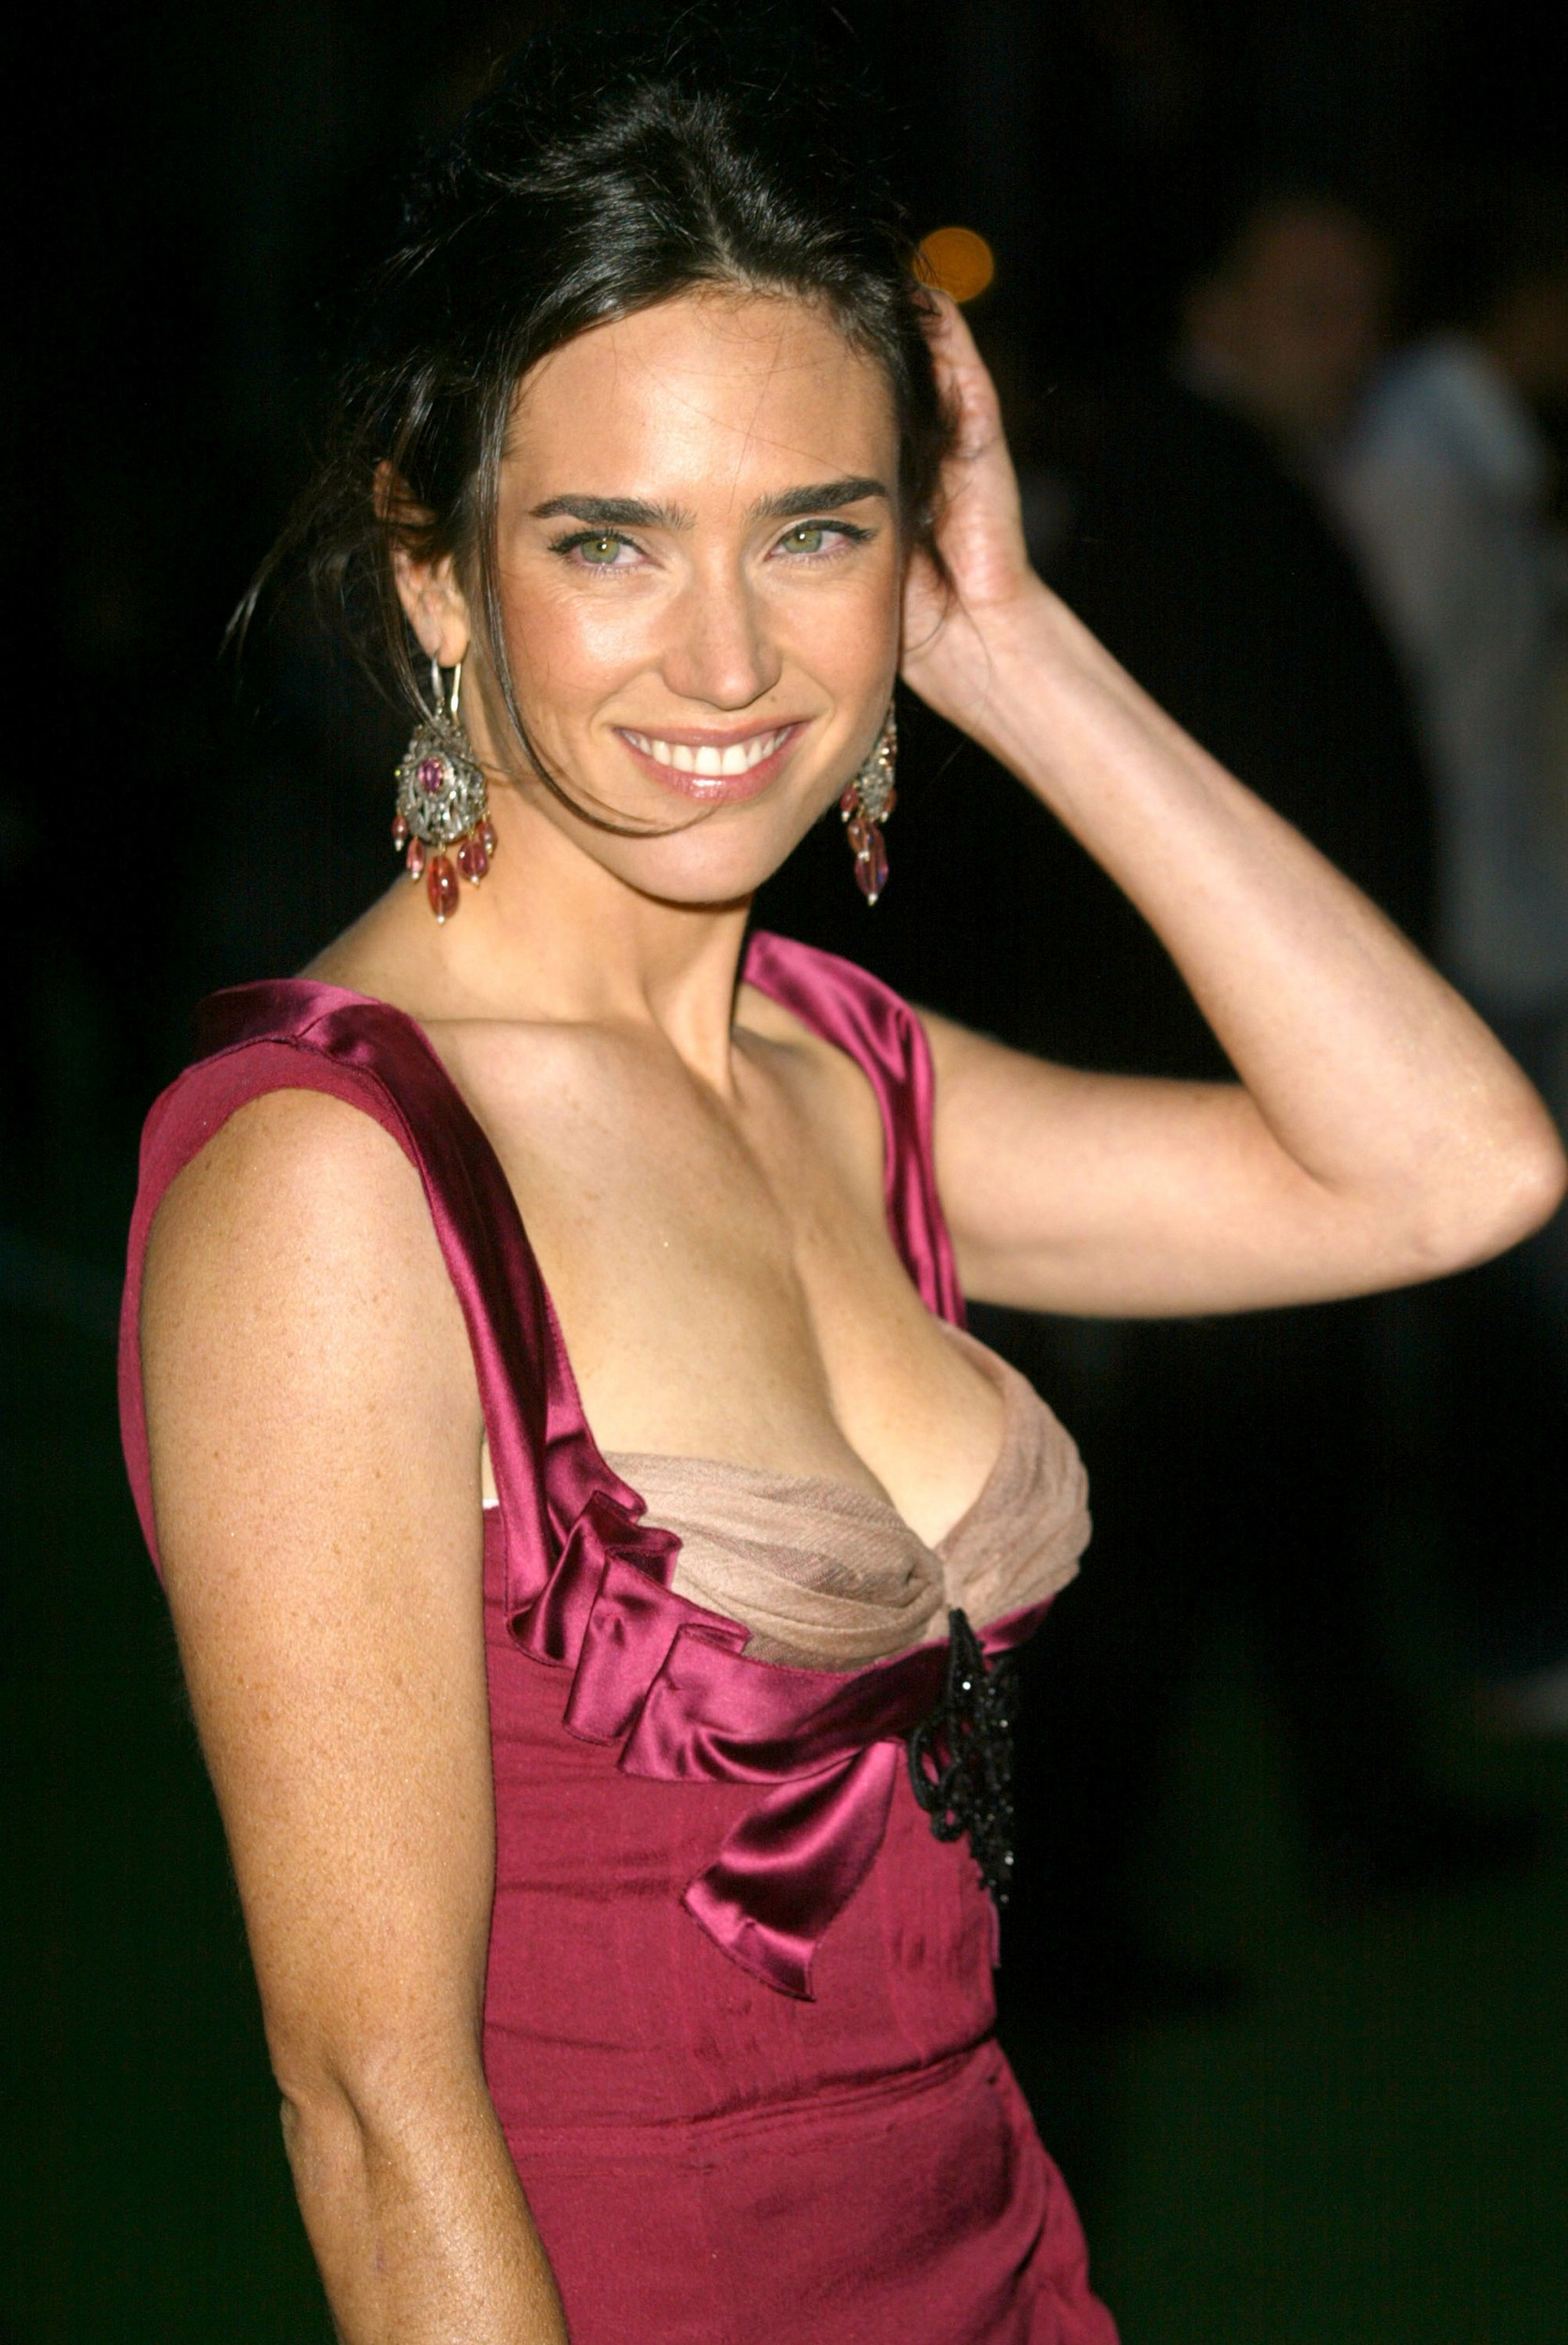 Naked Pictures Of Jennifer Connelly 51